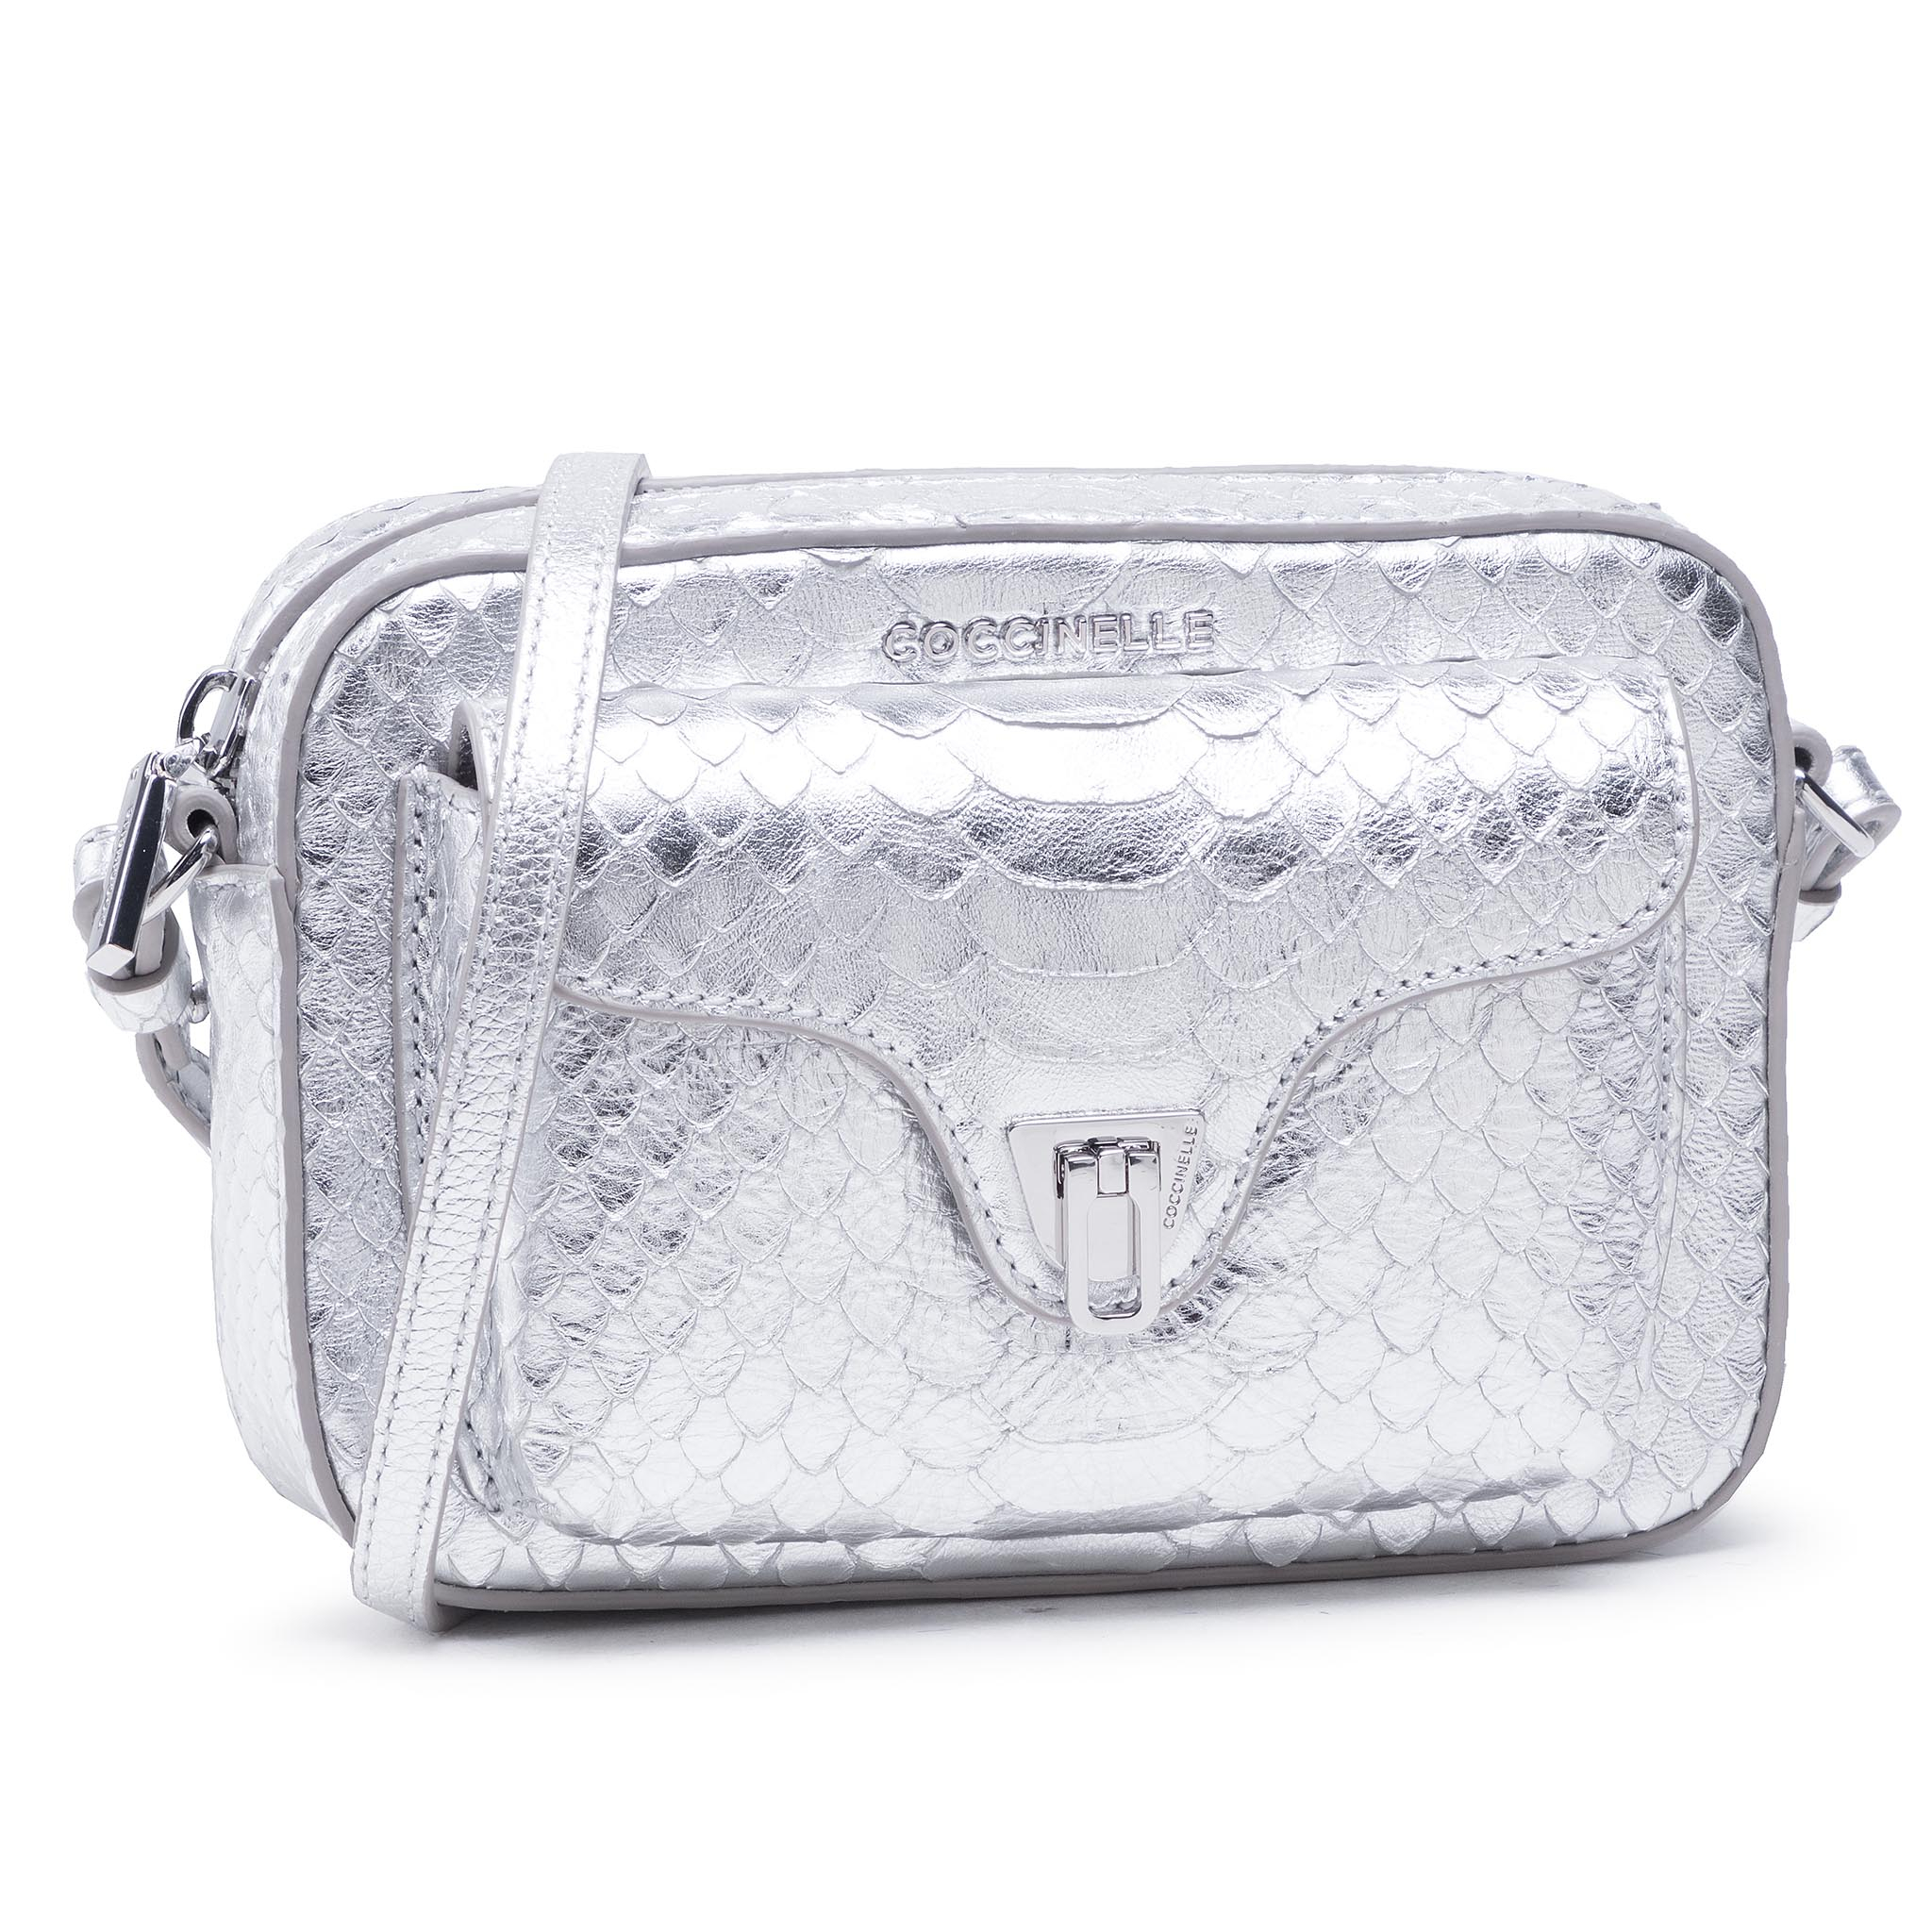 Coccinelle HF4 Beat Python Lulula E1 HF4 55 04 01 Silver/Silver Y69